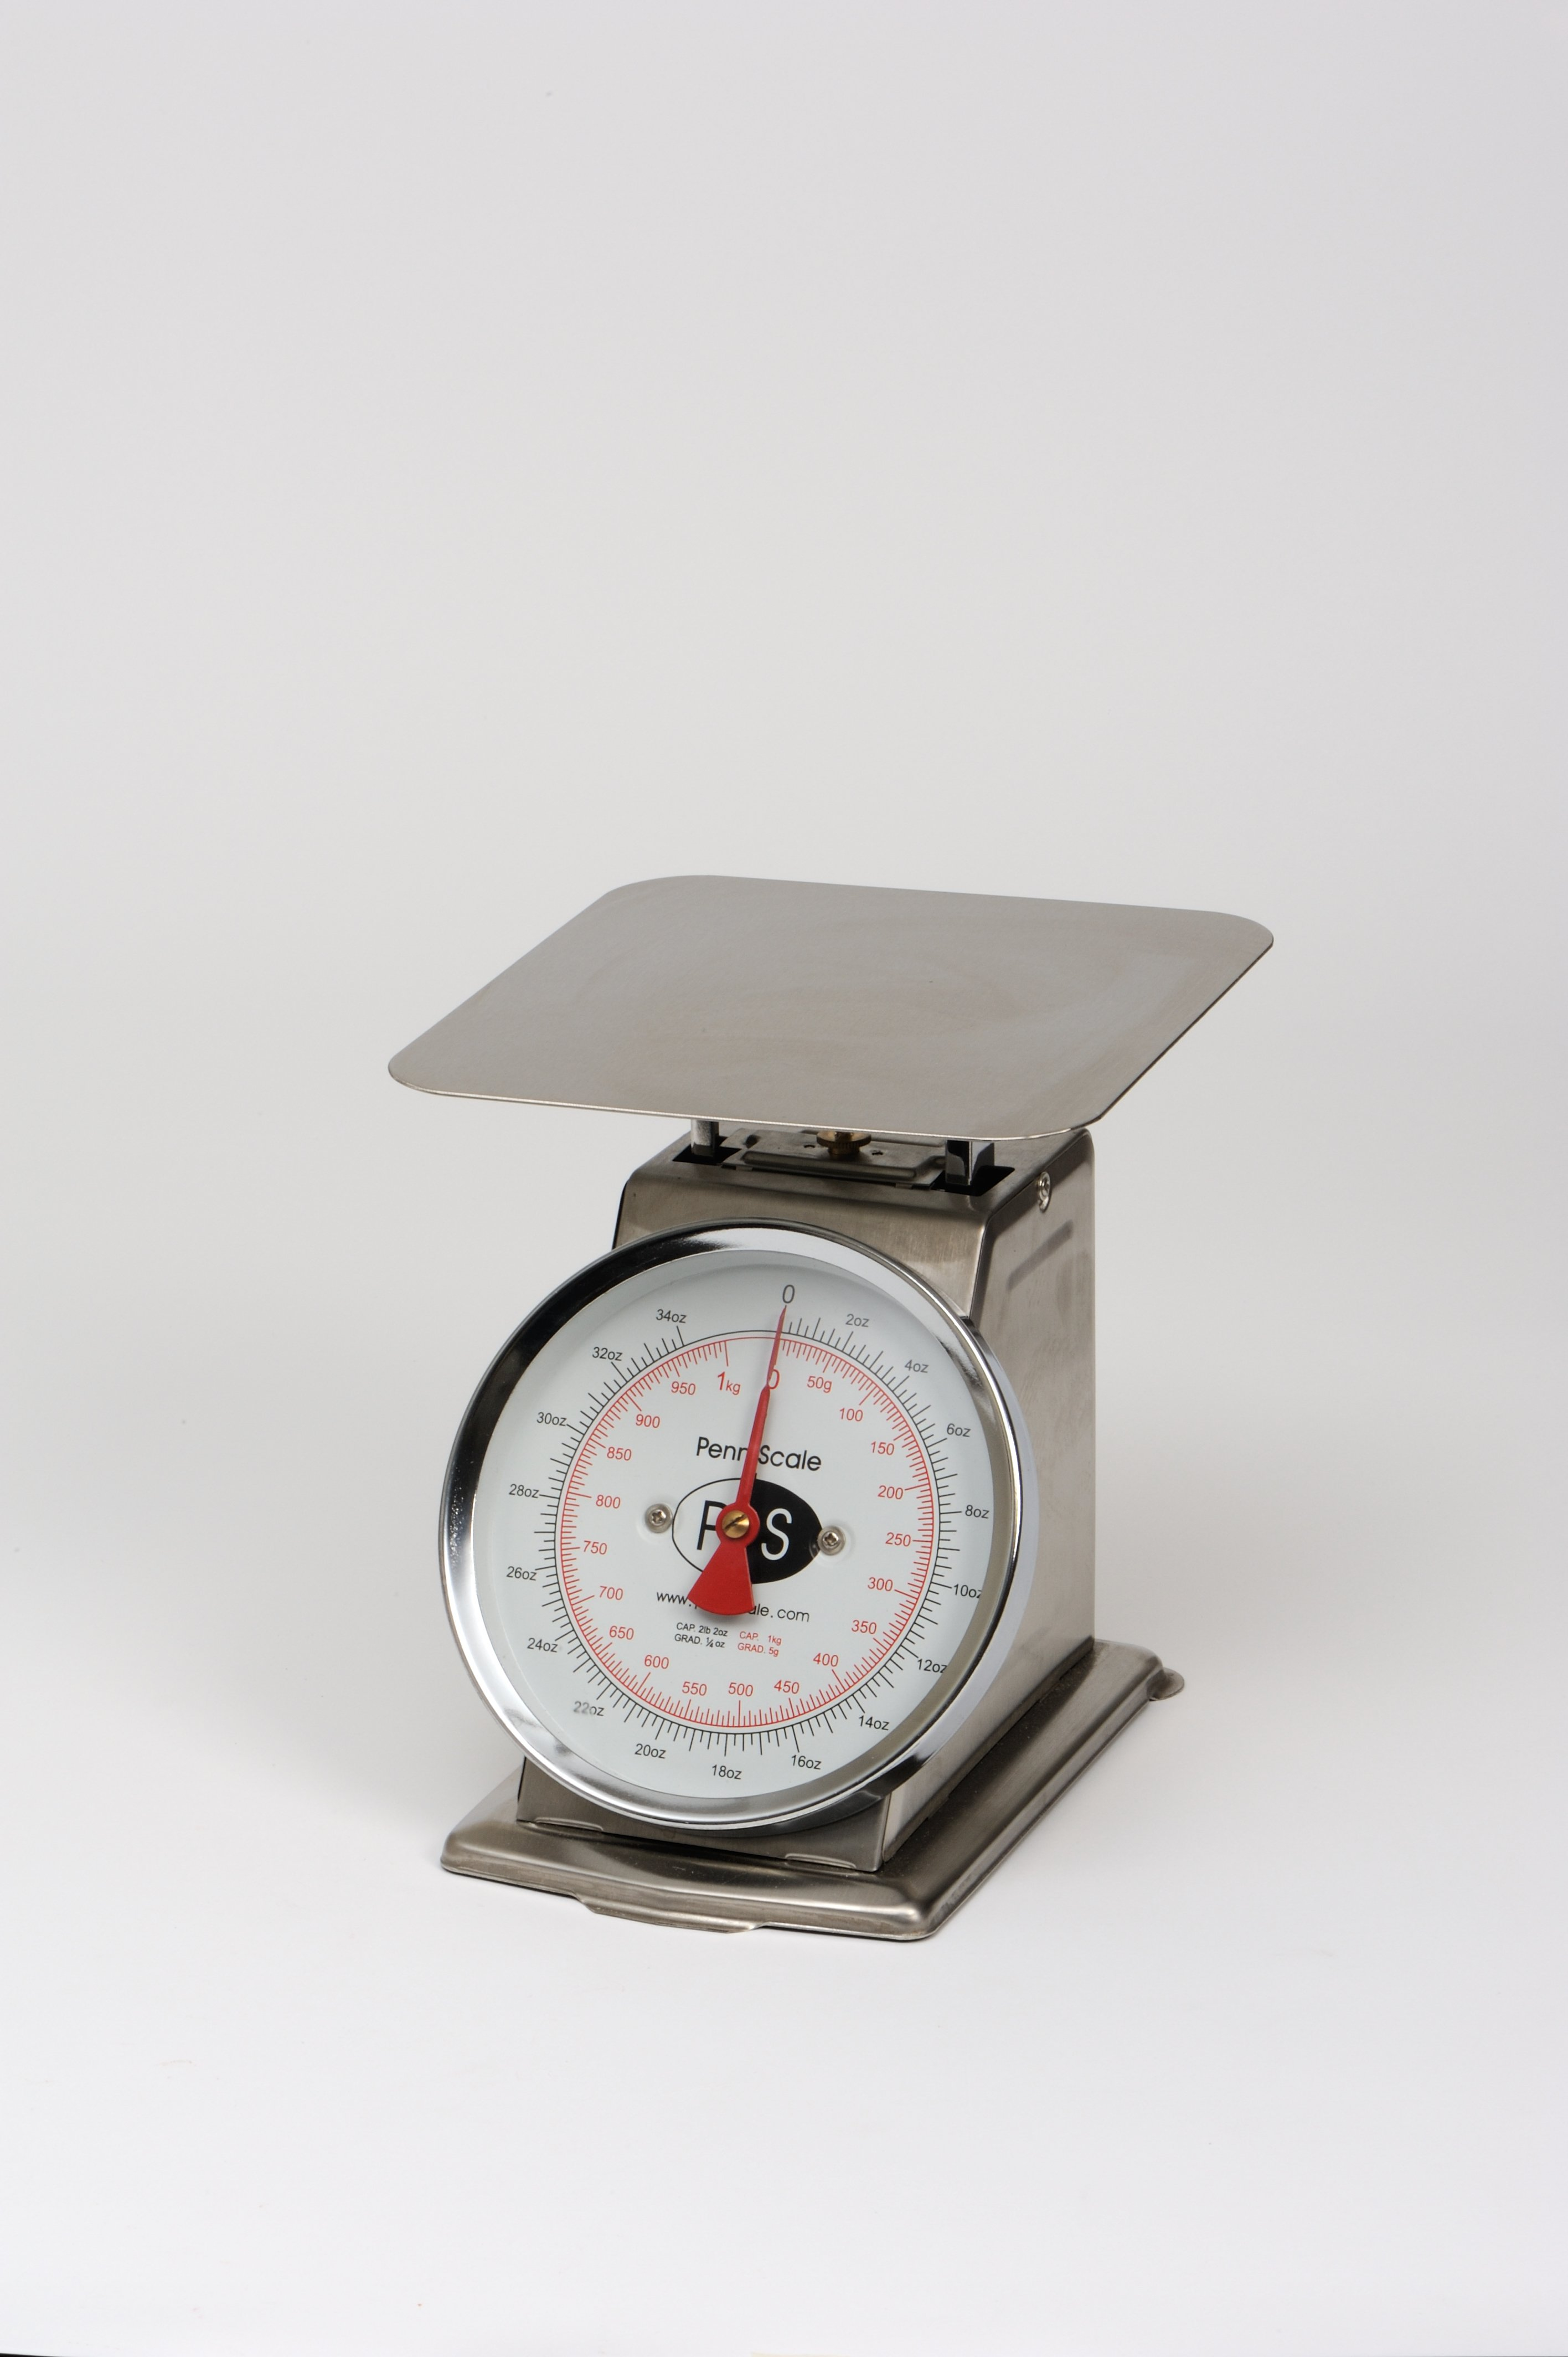 Penn Scale P-2 2 lb. Spring Stainless Steel Scale with 8 inch Stainless Steel Platter